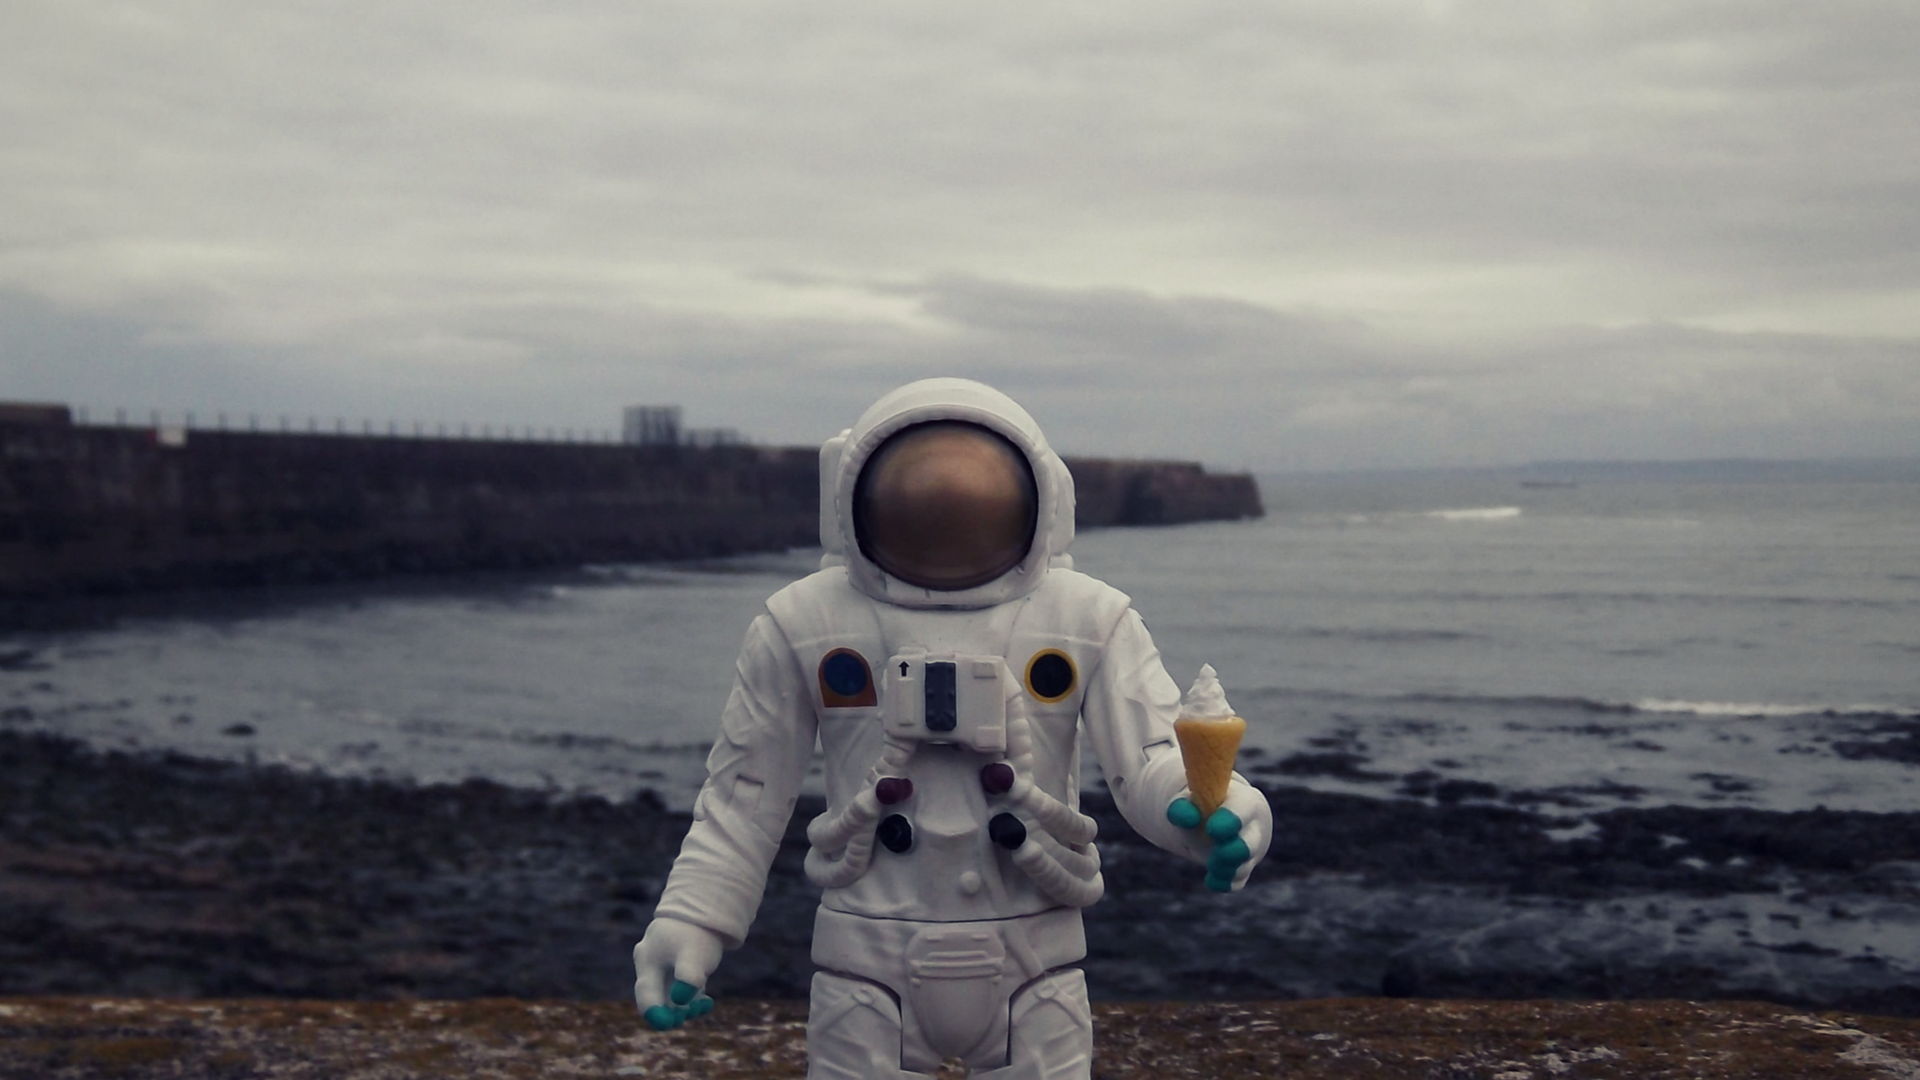 Astronauts of Hartlepool is on at Vault Festival from Feb 8-12